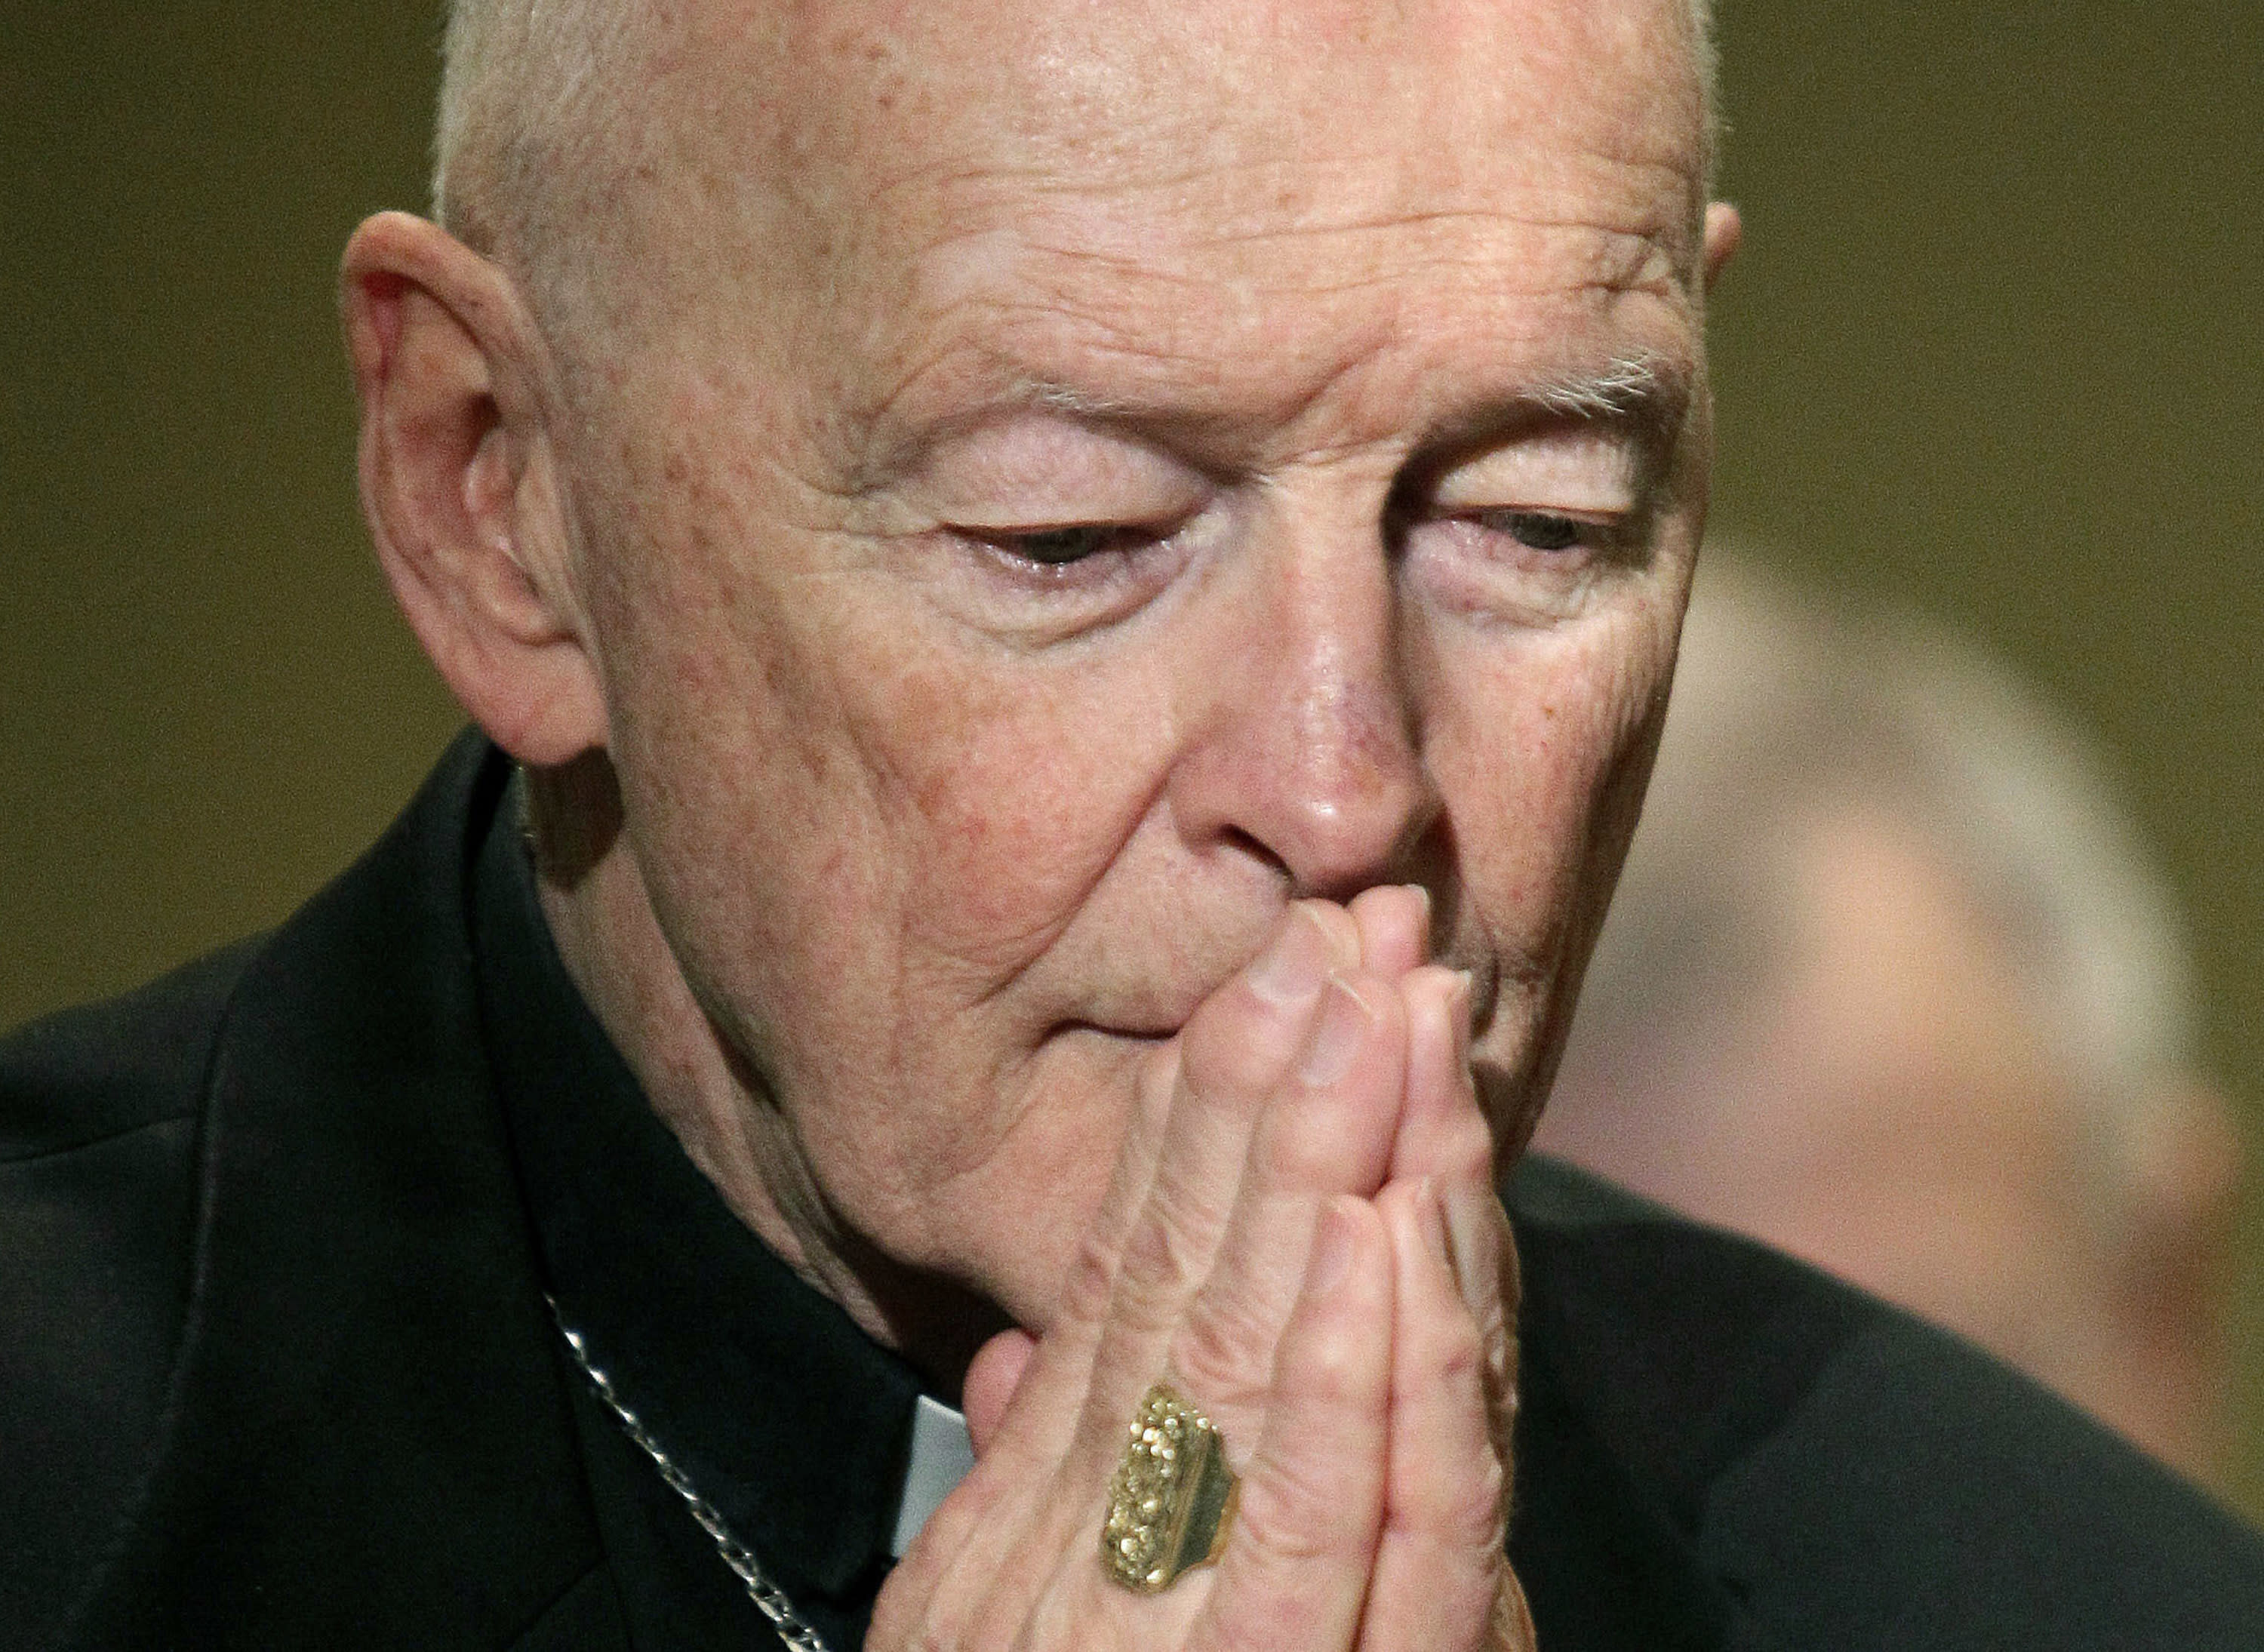 """FILE - In this Nov. 14, 2011, file photo, then Cardinal Theodore McCarrick prays during the United States Conference of Catholic Bishops' annual fall assembly in Baltimore. In a document, Archbishop Carlo Maria Vigano denounced the official Vatican silence about his claims and accused Pope Francis of mounting a campaign of """"subtle slander"""" against him. He urged the head of the Vatican bishops office to speak out, saying he has all the documentation needed to prove years of cover-up of allegations of sexual misconduct of ex-Cardinal McCarrick. (AP Photo/Patrick Semansky, File)"""